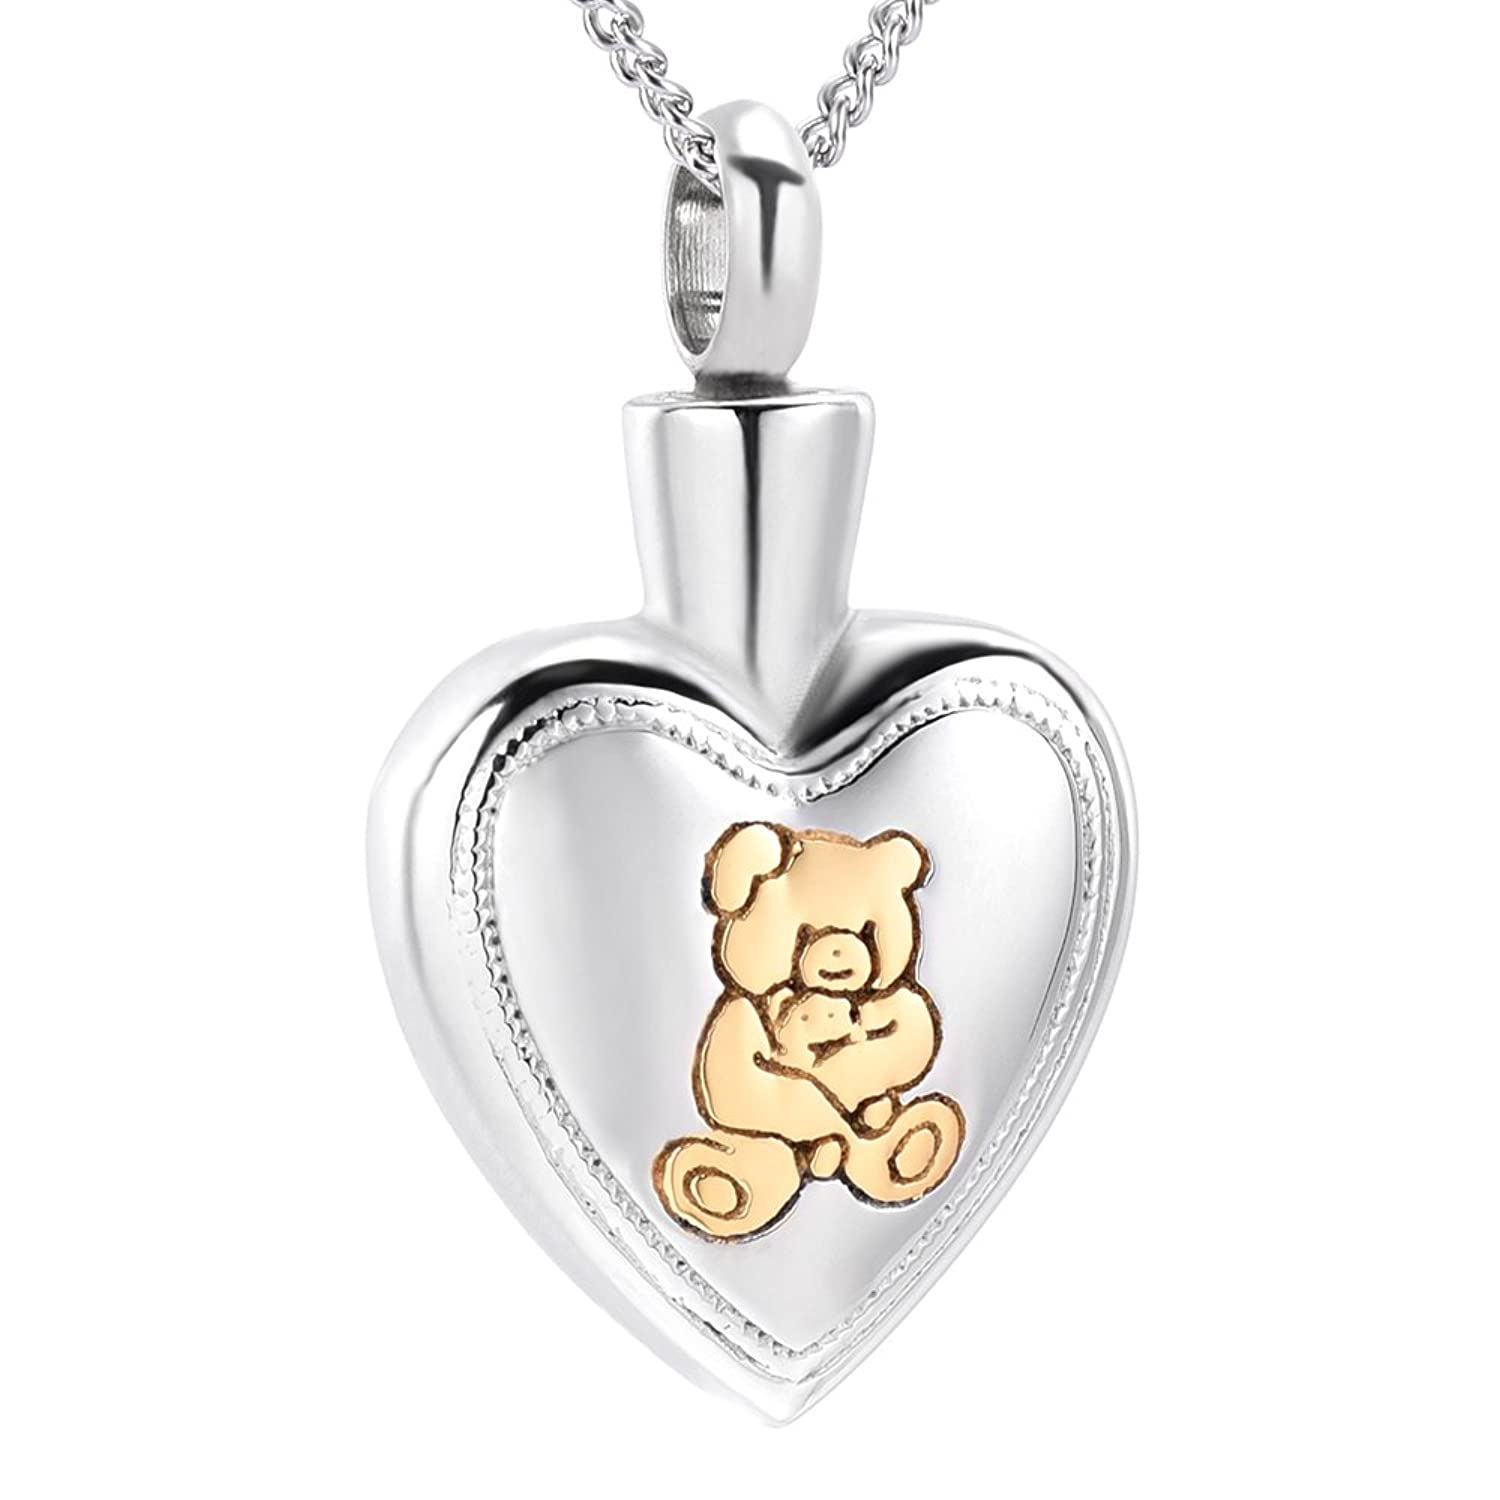 Cute Bear Logo Heart Pendant Cremation Urn Necklace Ashes Keepsake Memorial Jewelry+Fill Kit